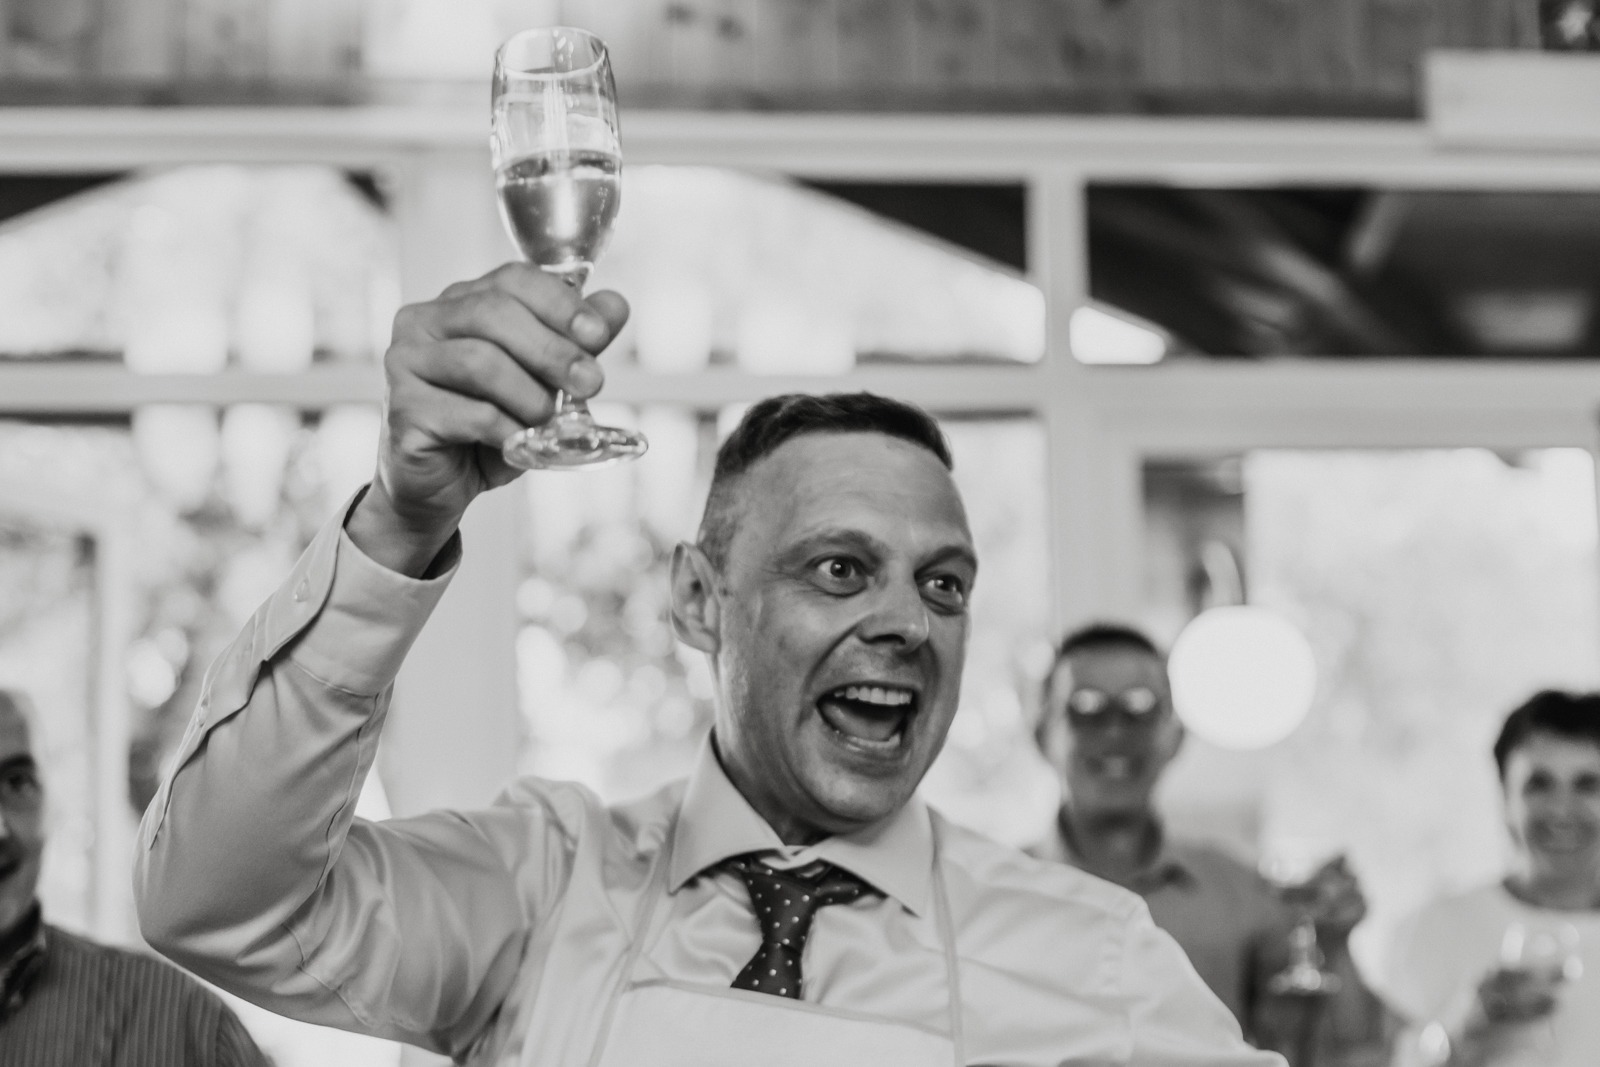 groom-smile-toast-wedding-italy-party-fun-drink-glass